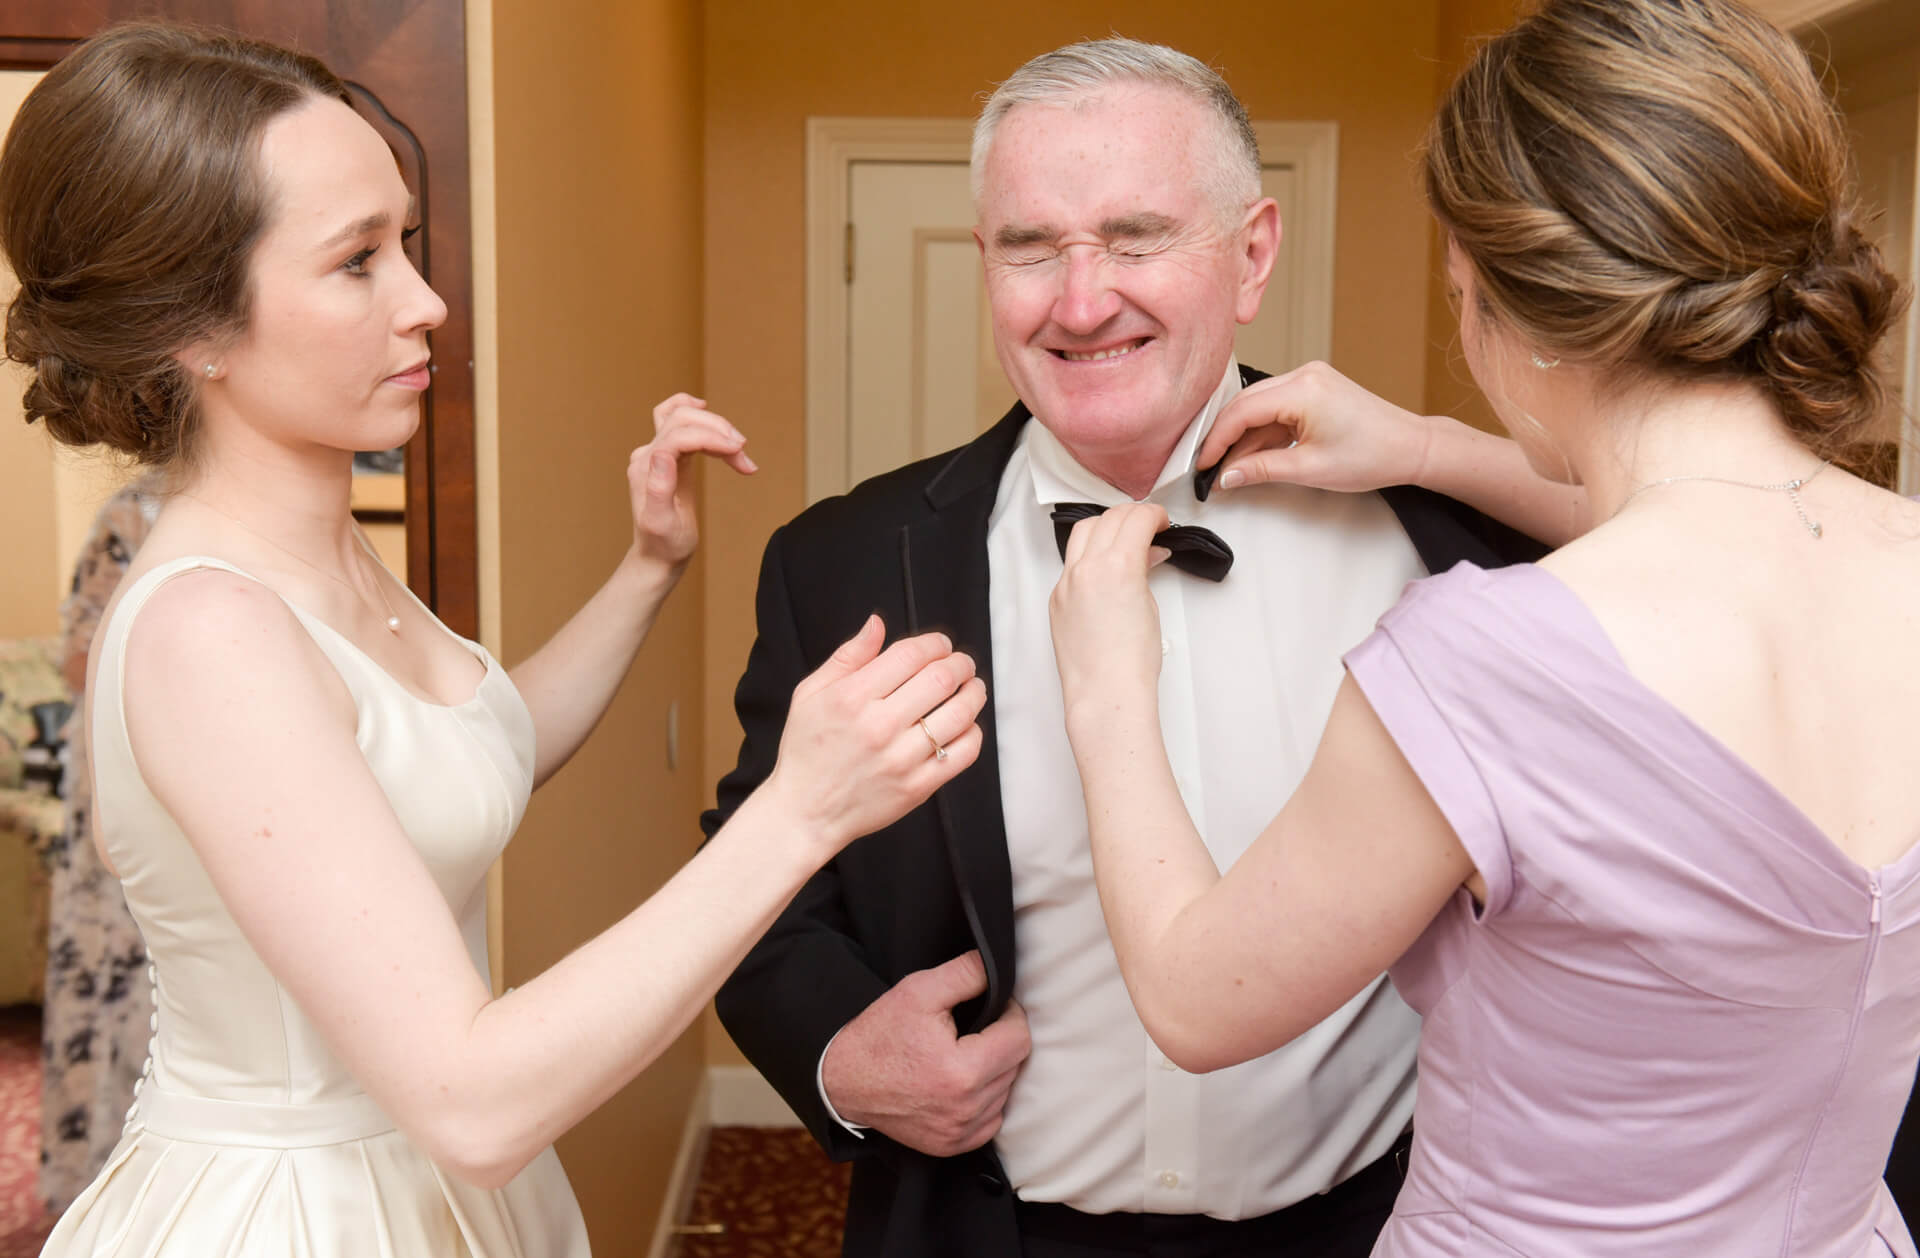 Candid wedding photography showing the bride and sister trying to tightened her father's tie at the Dearborn Inn wedding in Dearborn, Michigan.